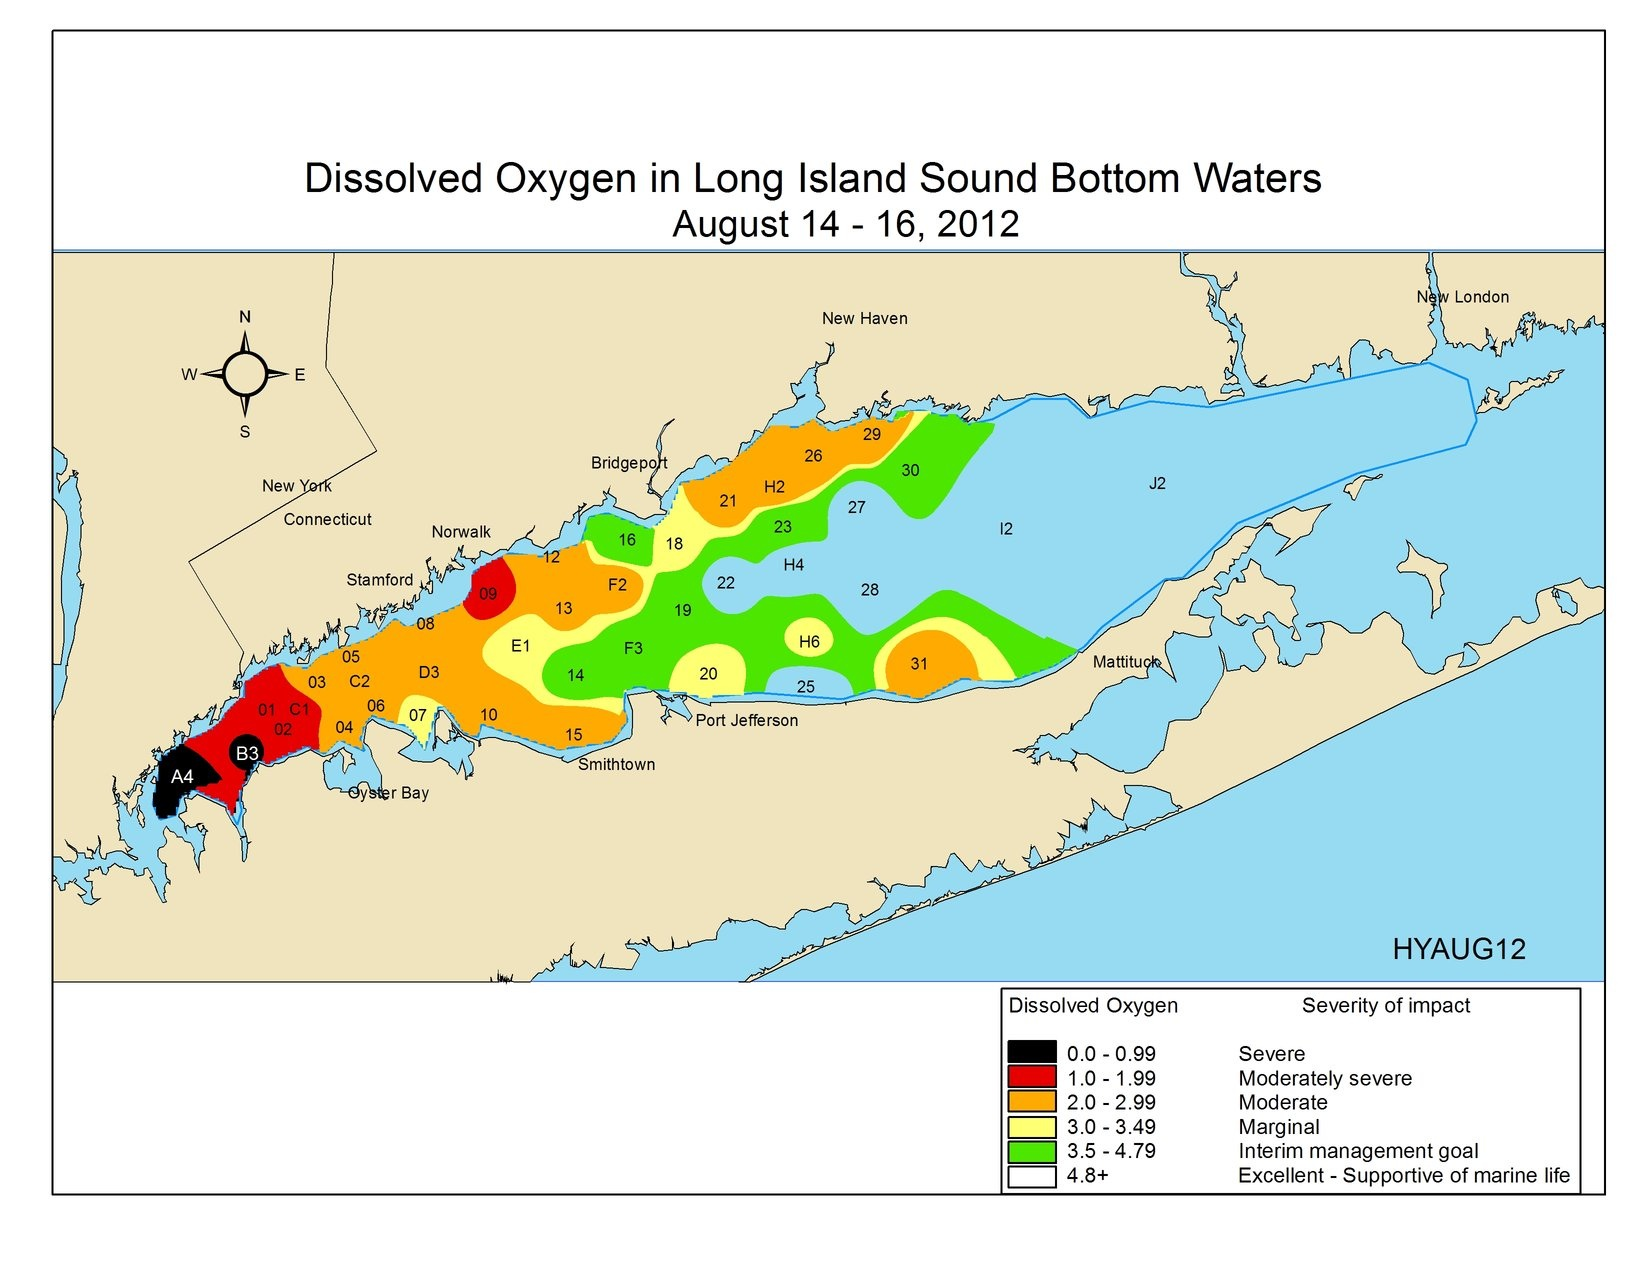 Severe hypoxic conditions in Long Island Sound during August